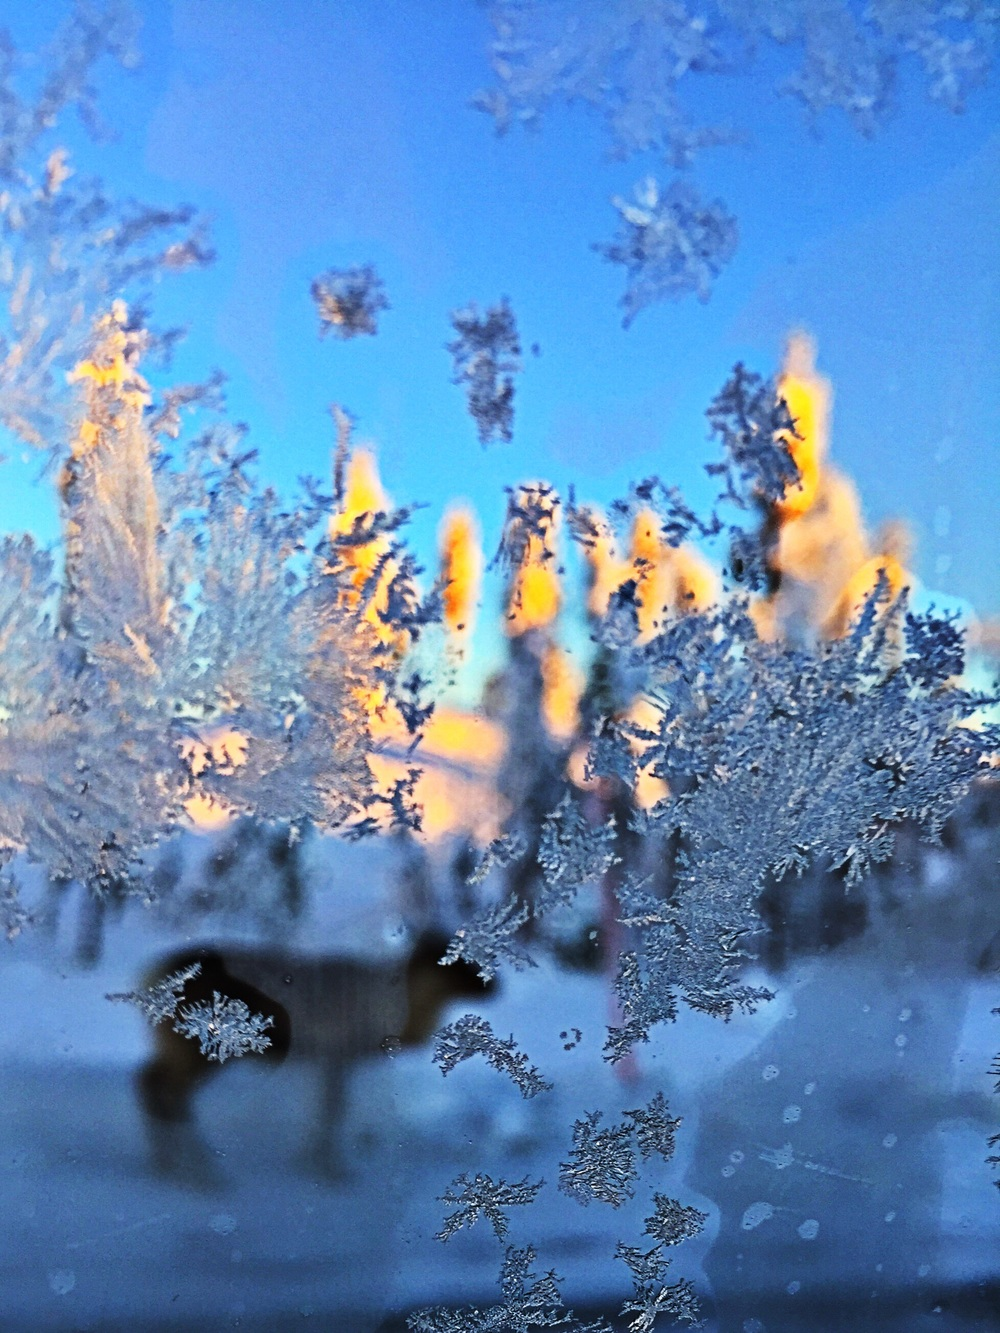 View from the backseat. Frozen window and a reindeer.